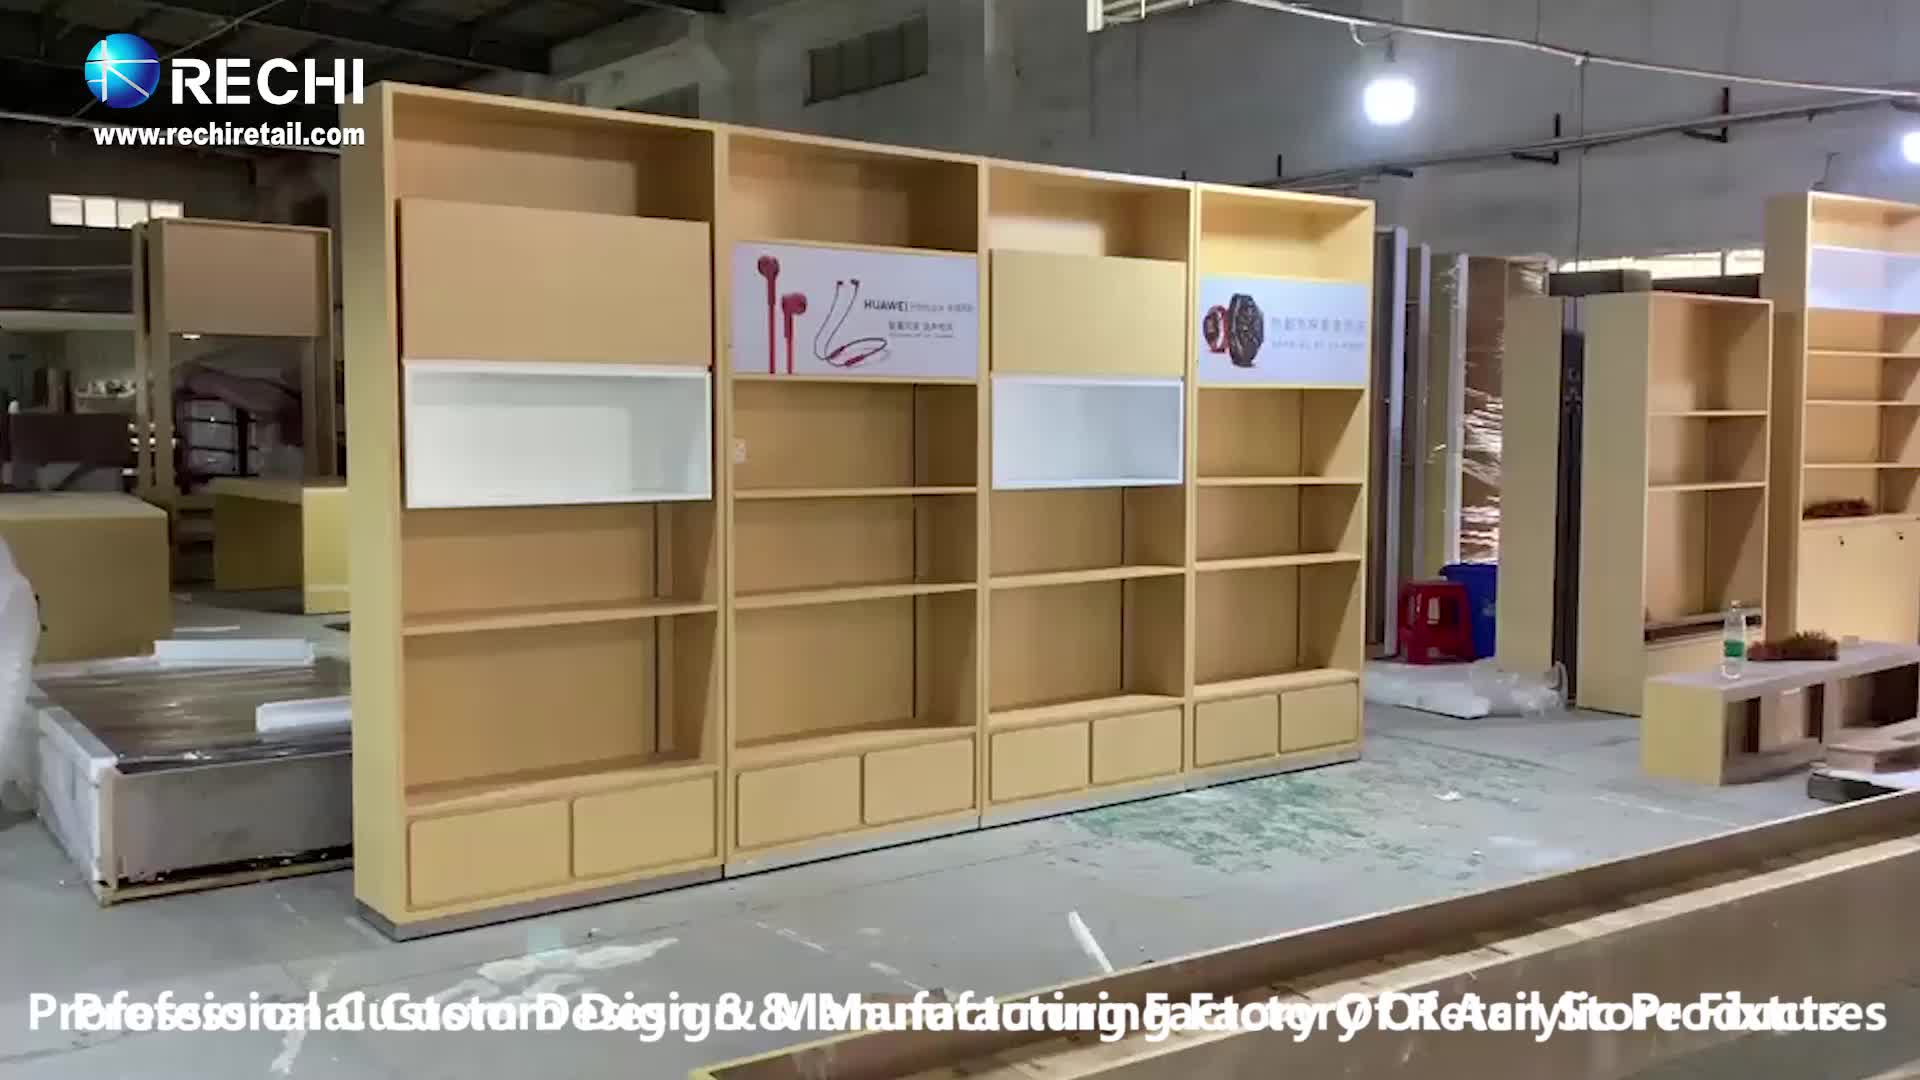 RECHI Custom Design Cell Phone Accessory Wall  Display Showcase With Shelf and Fabric Light Box for Smart Home Devices Display